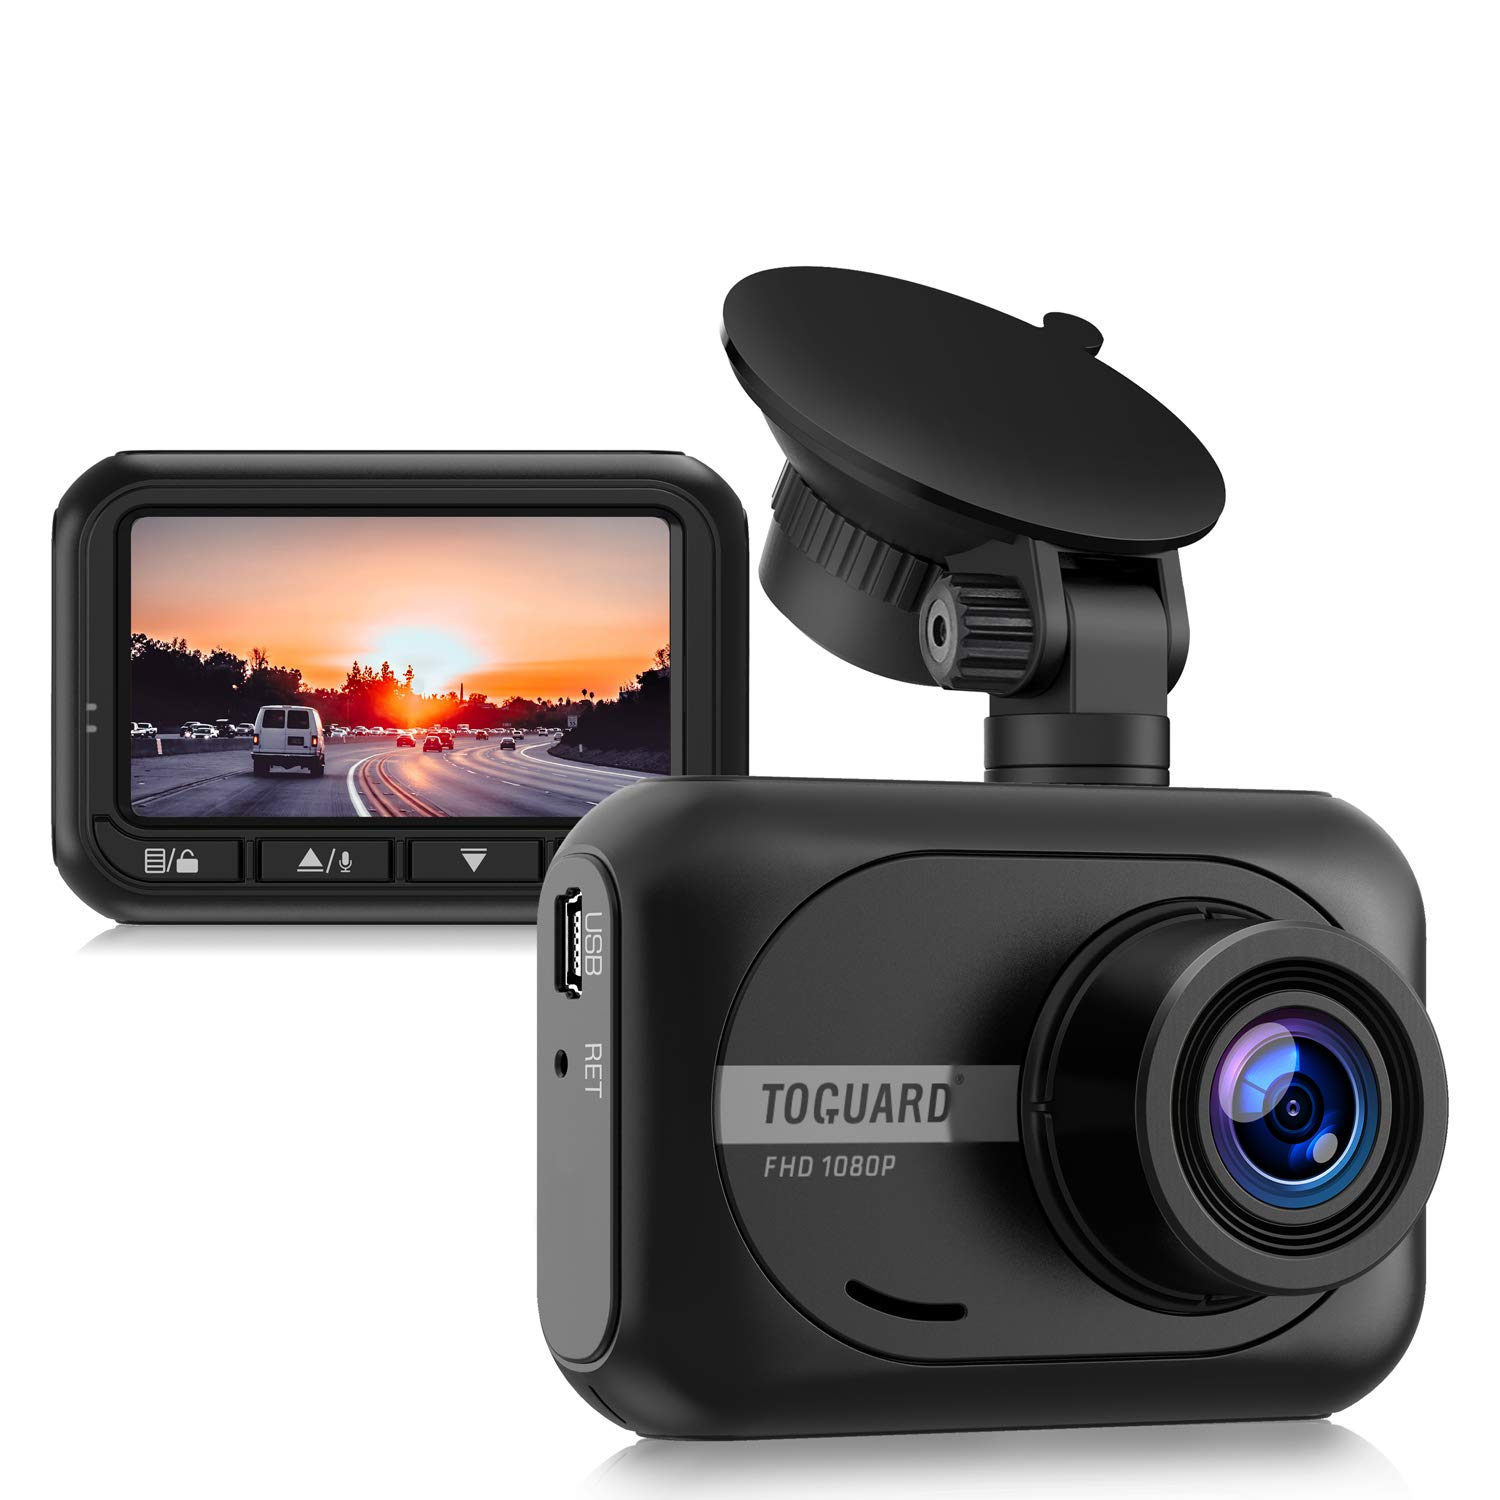 TOGUARD Dash Cam 1080P Full HD Car Camera, 2.45 inch 170° Wide Angle Dash Cams for Cars with Parking Monitor, G-Sensor and Loop Recording by TOGUARD